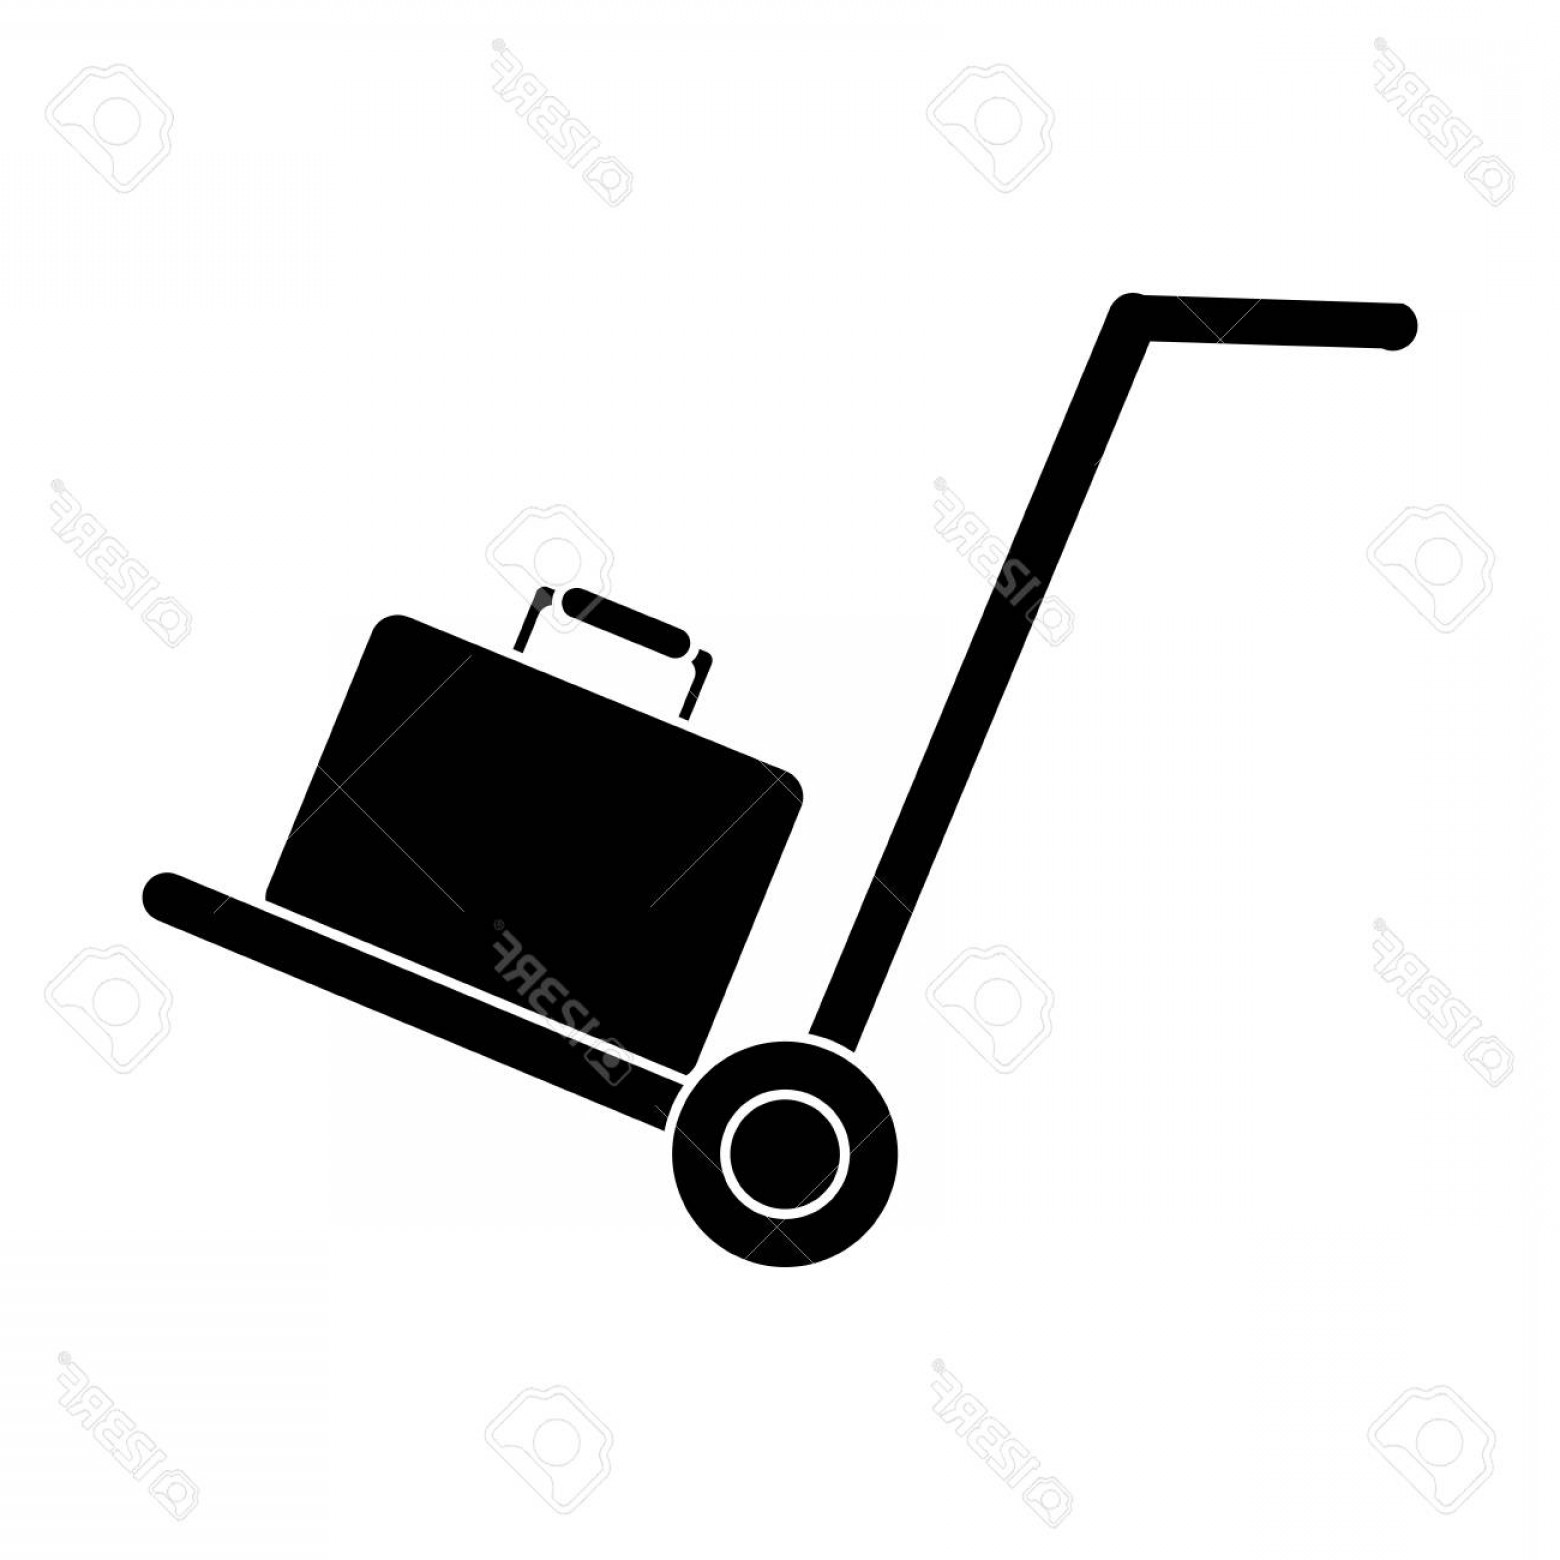 Hand Cart Silhouette Vectors: Photostock Vector Silhouette Hand Cart Suitcase Luggage Travel Equipment Vector Illustration